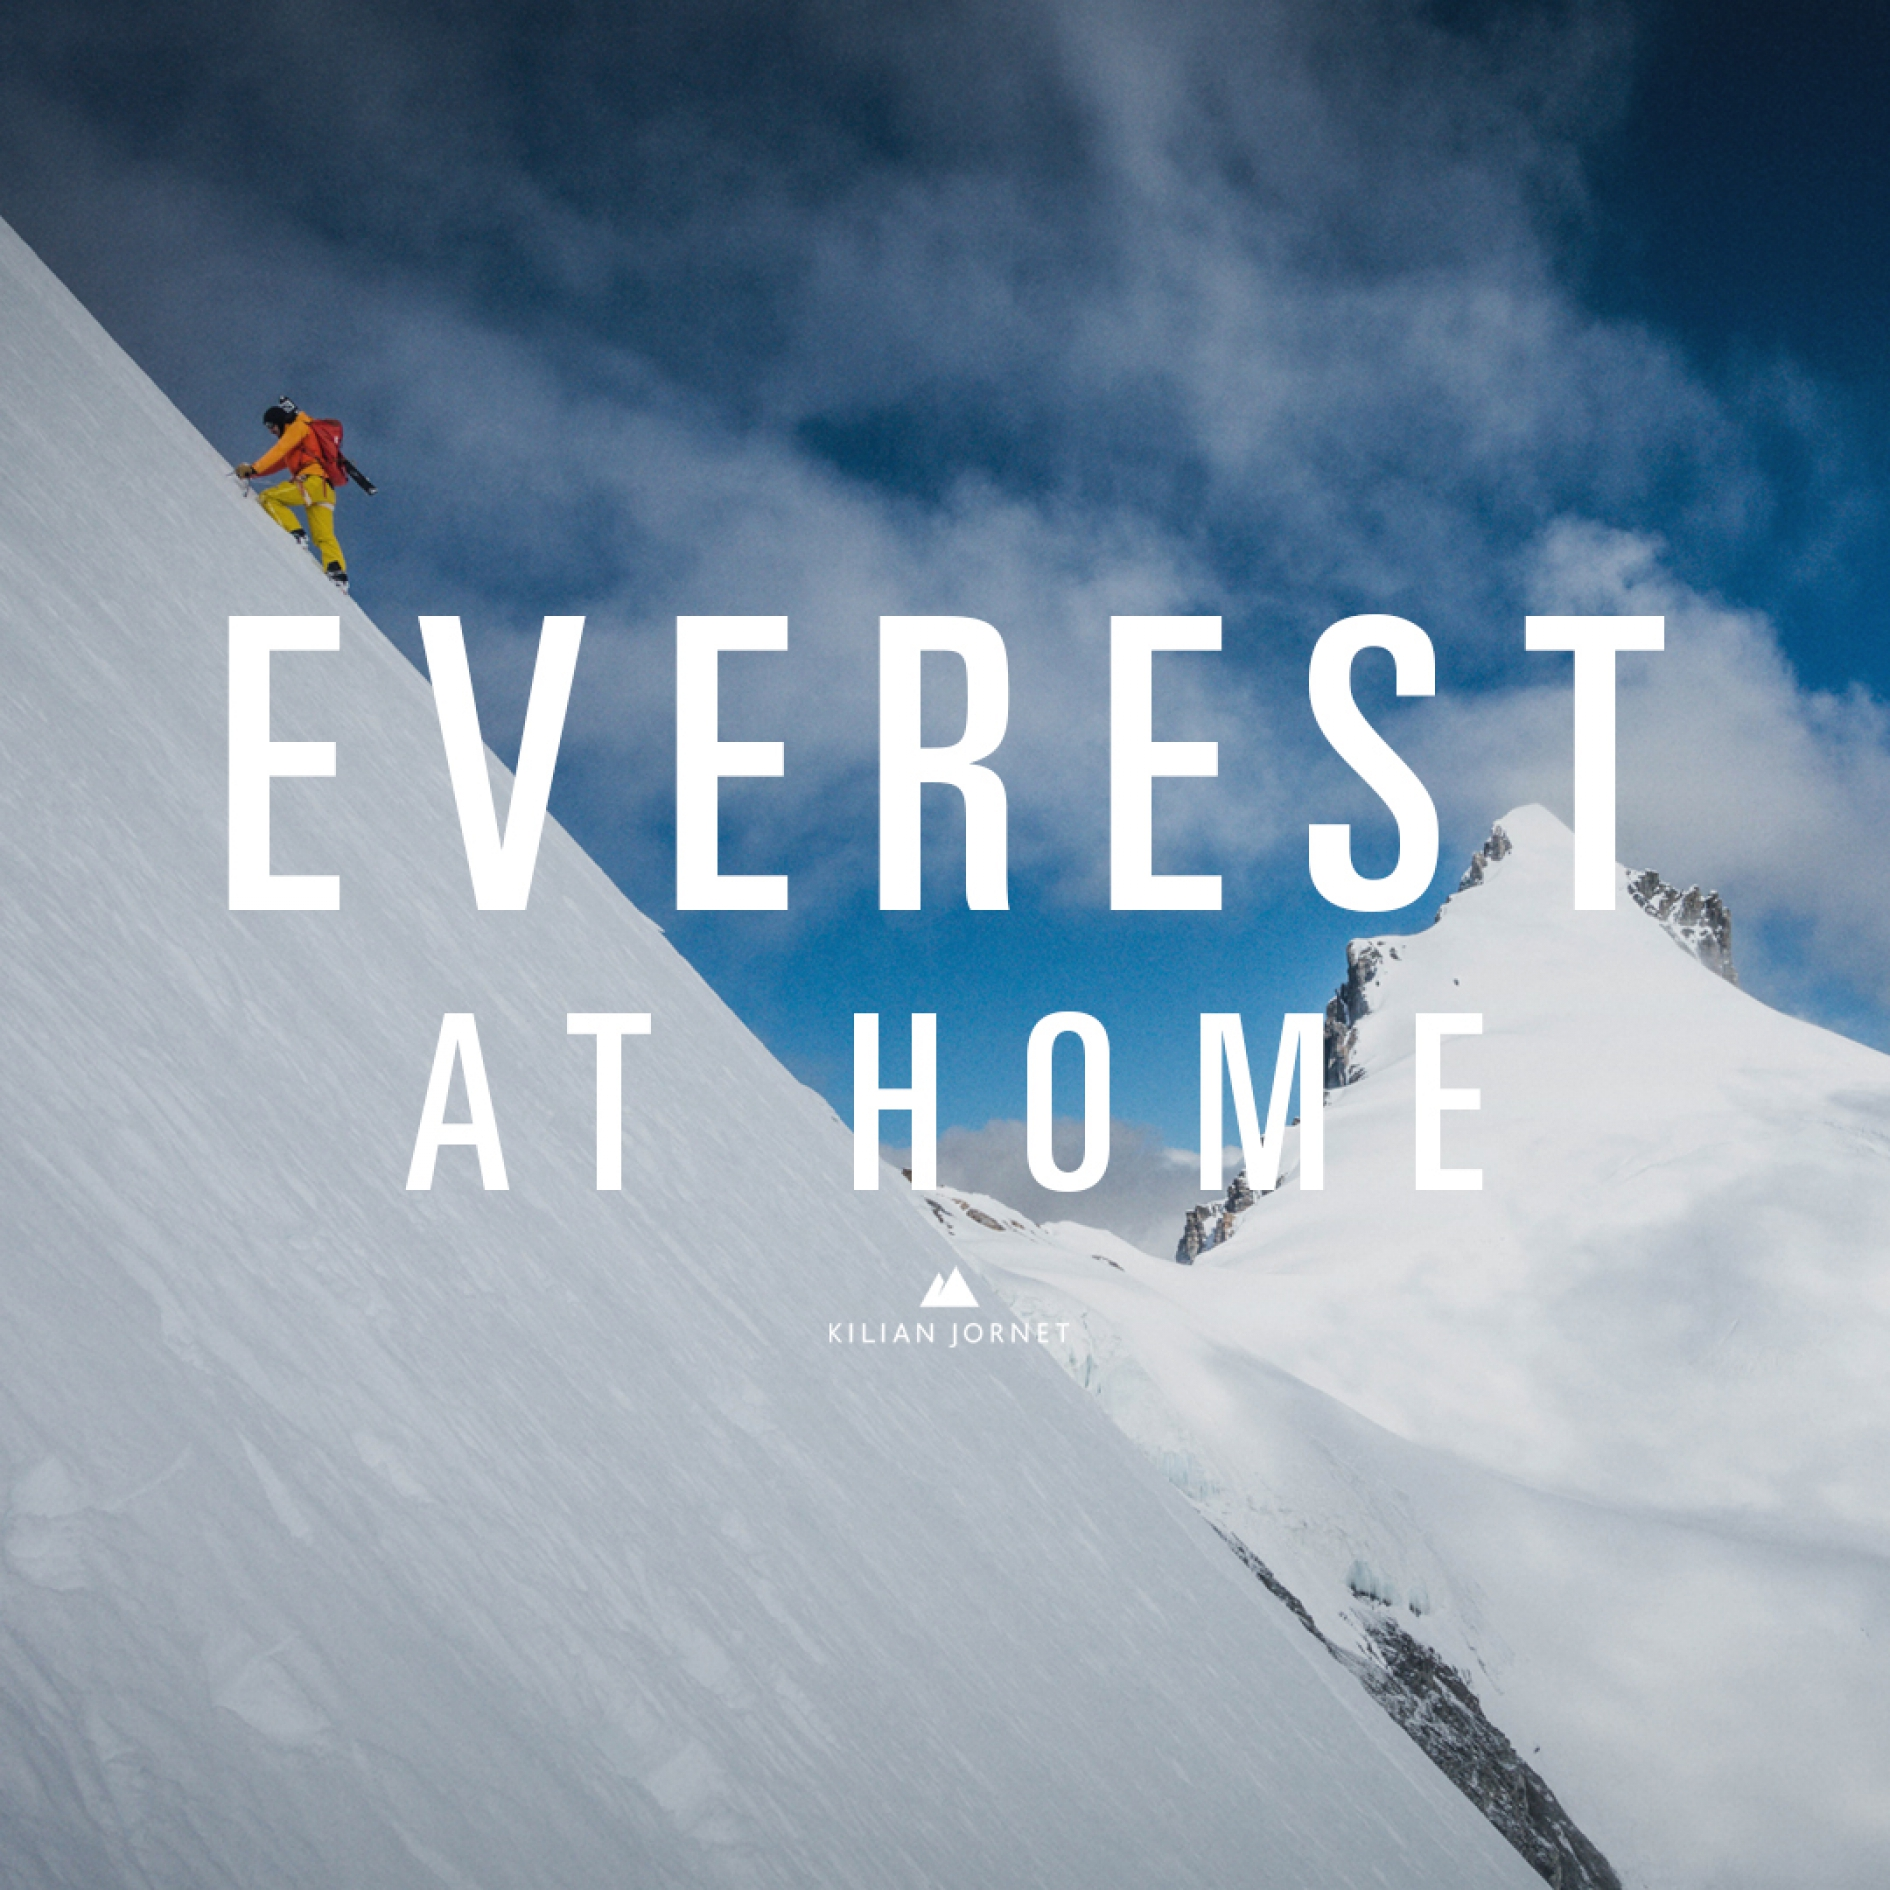 Everest at home